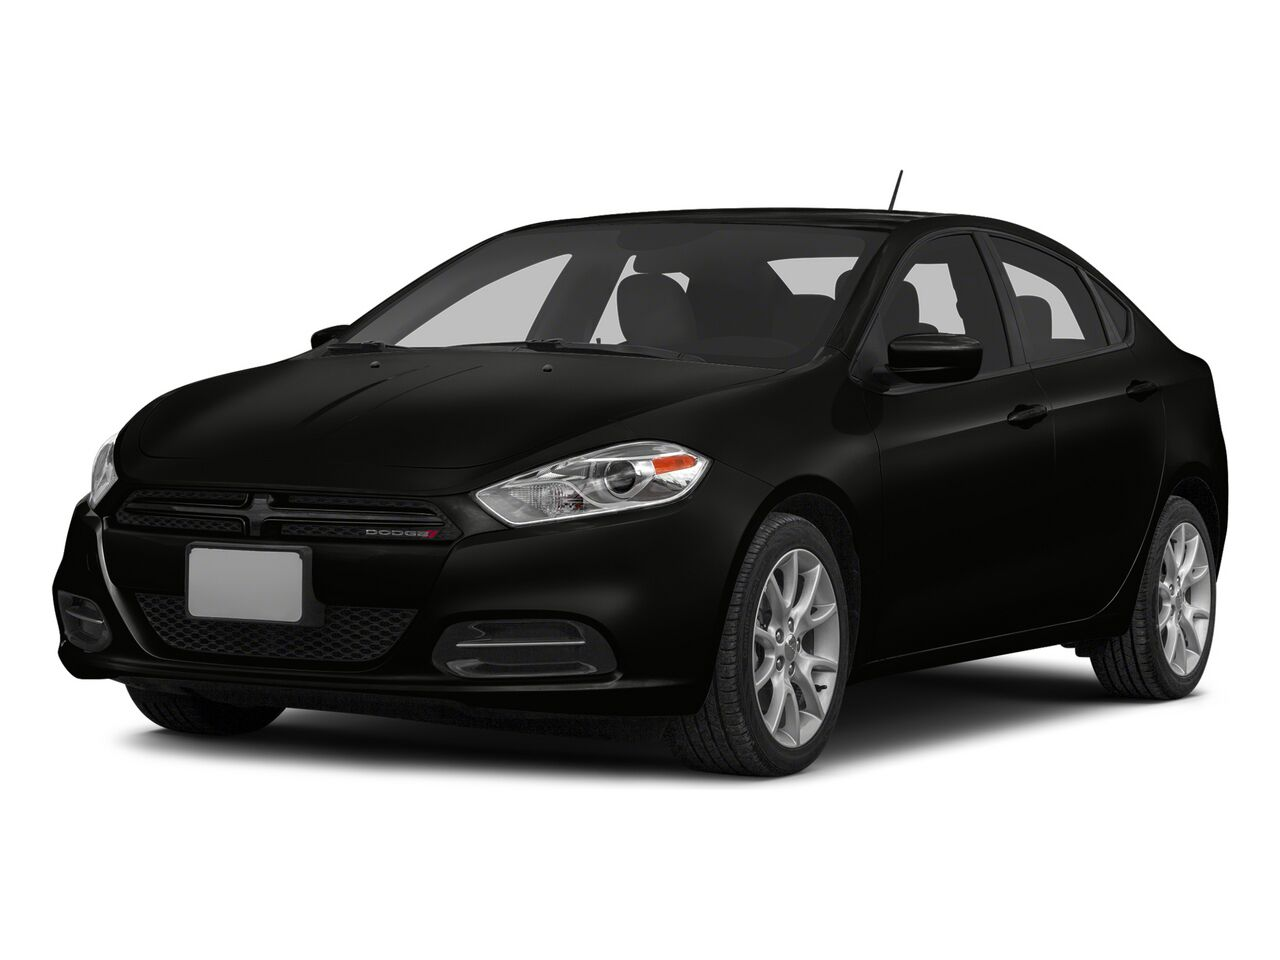 2015 Dodge Dart Aero Chattanooga TN